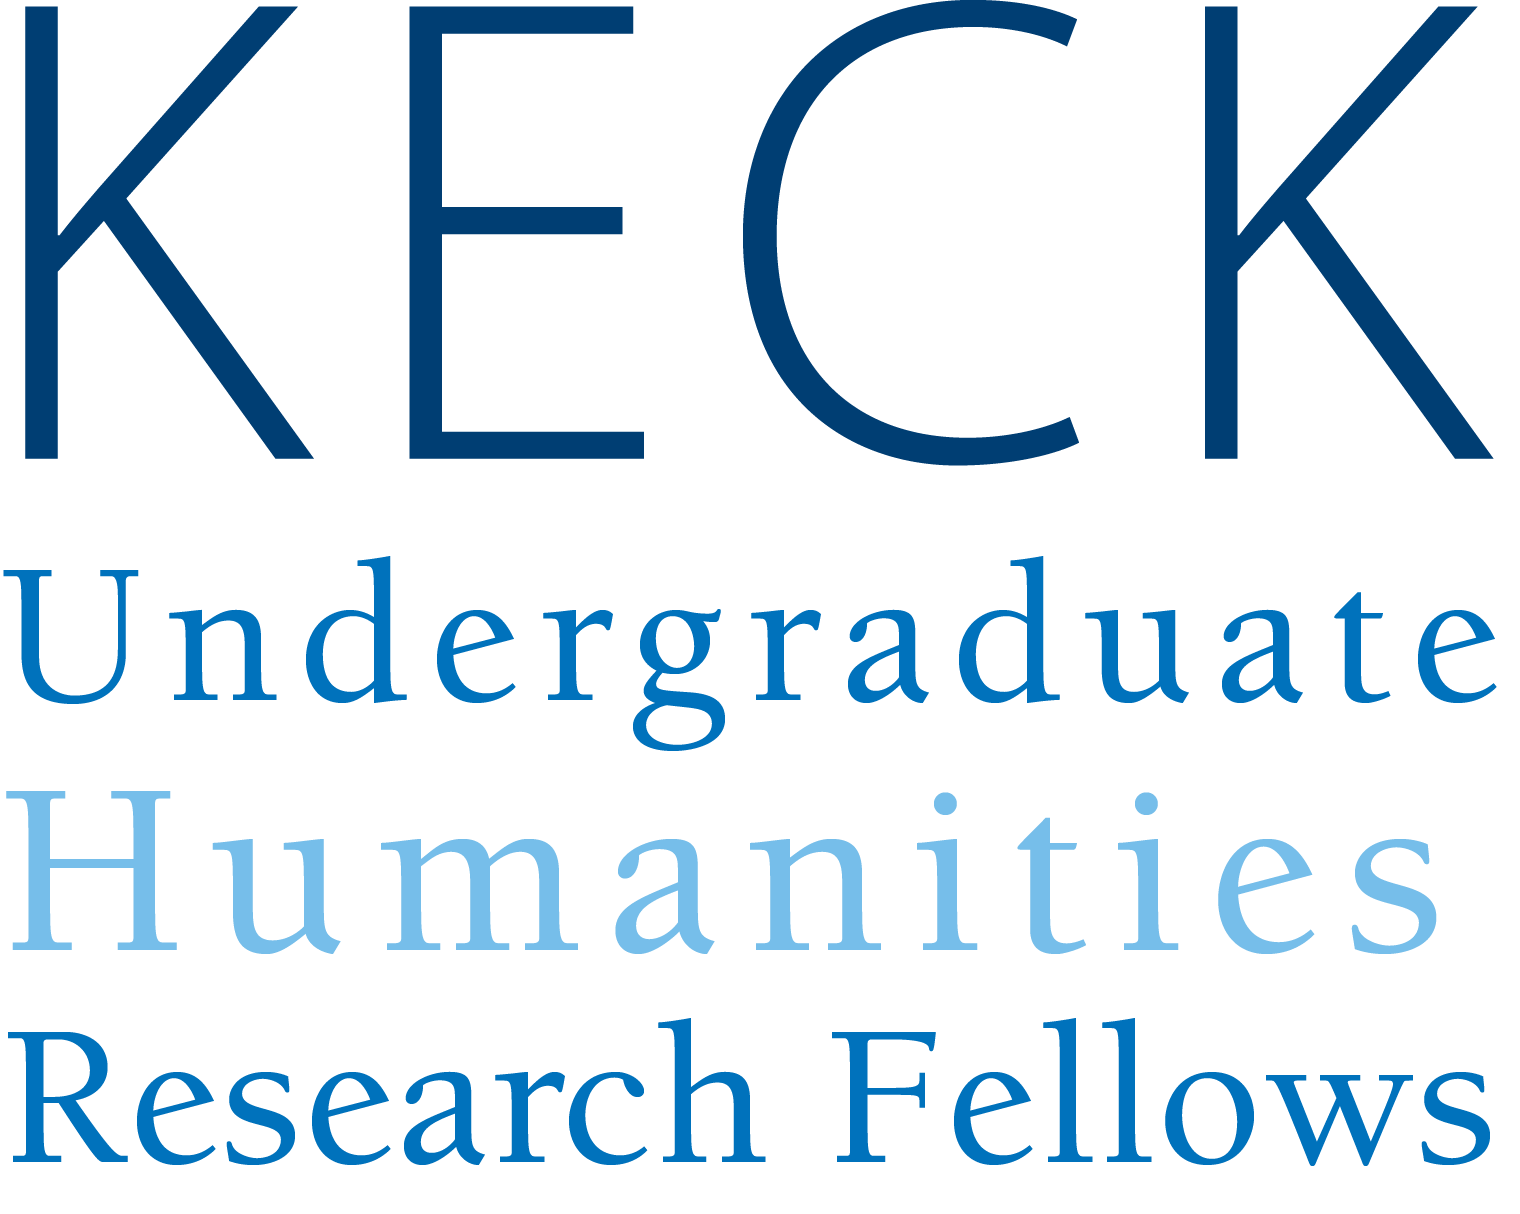 Keck Undergraduate Humanities Research Fellows